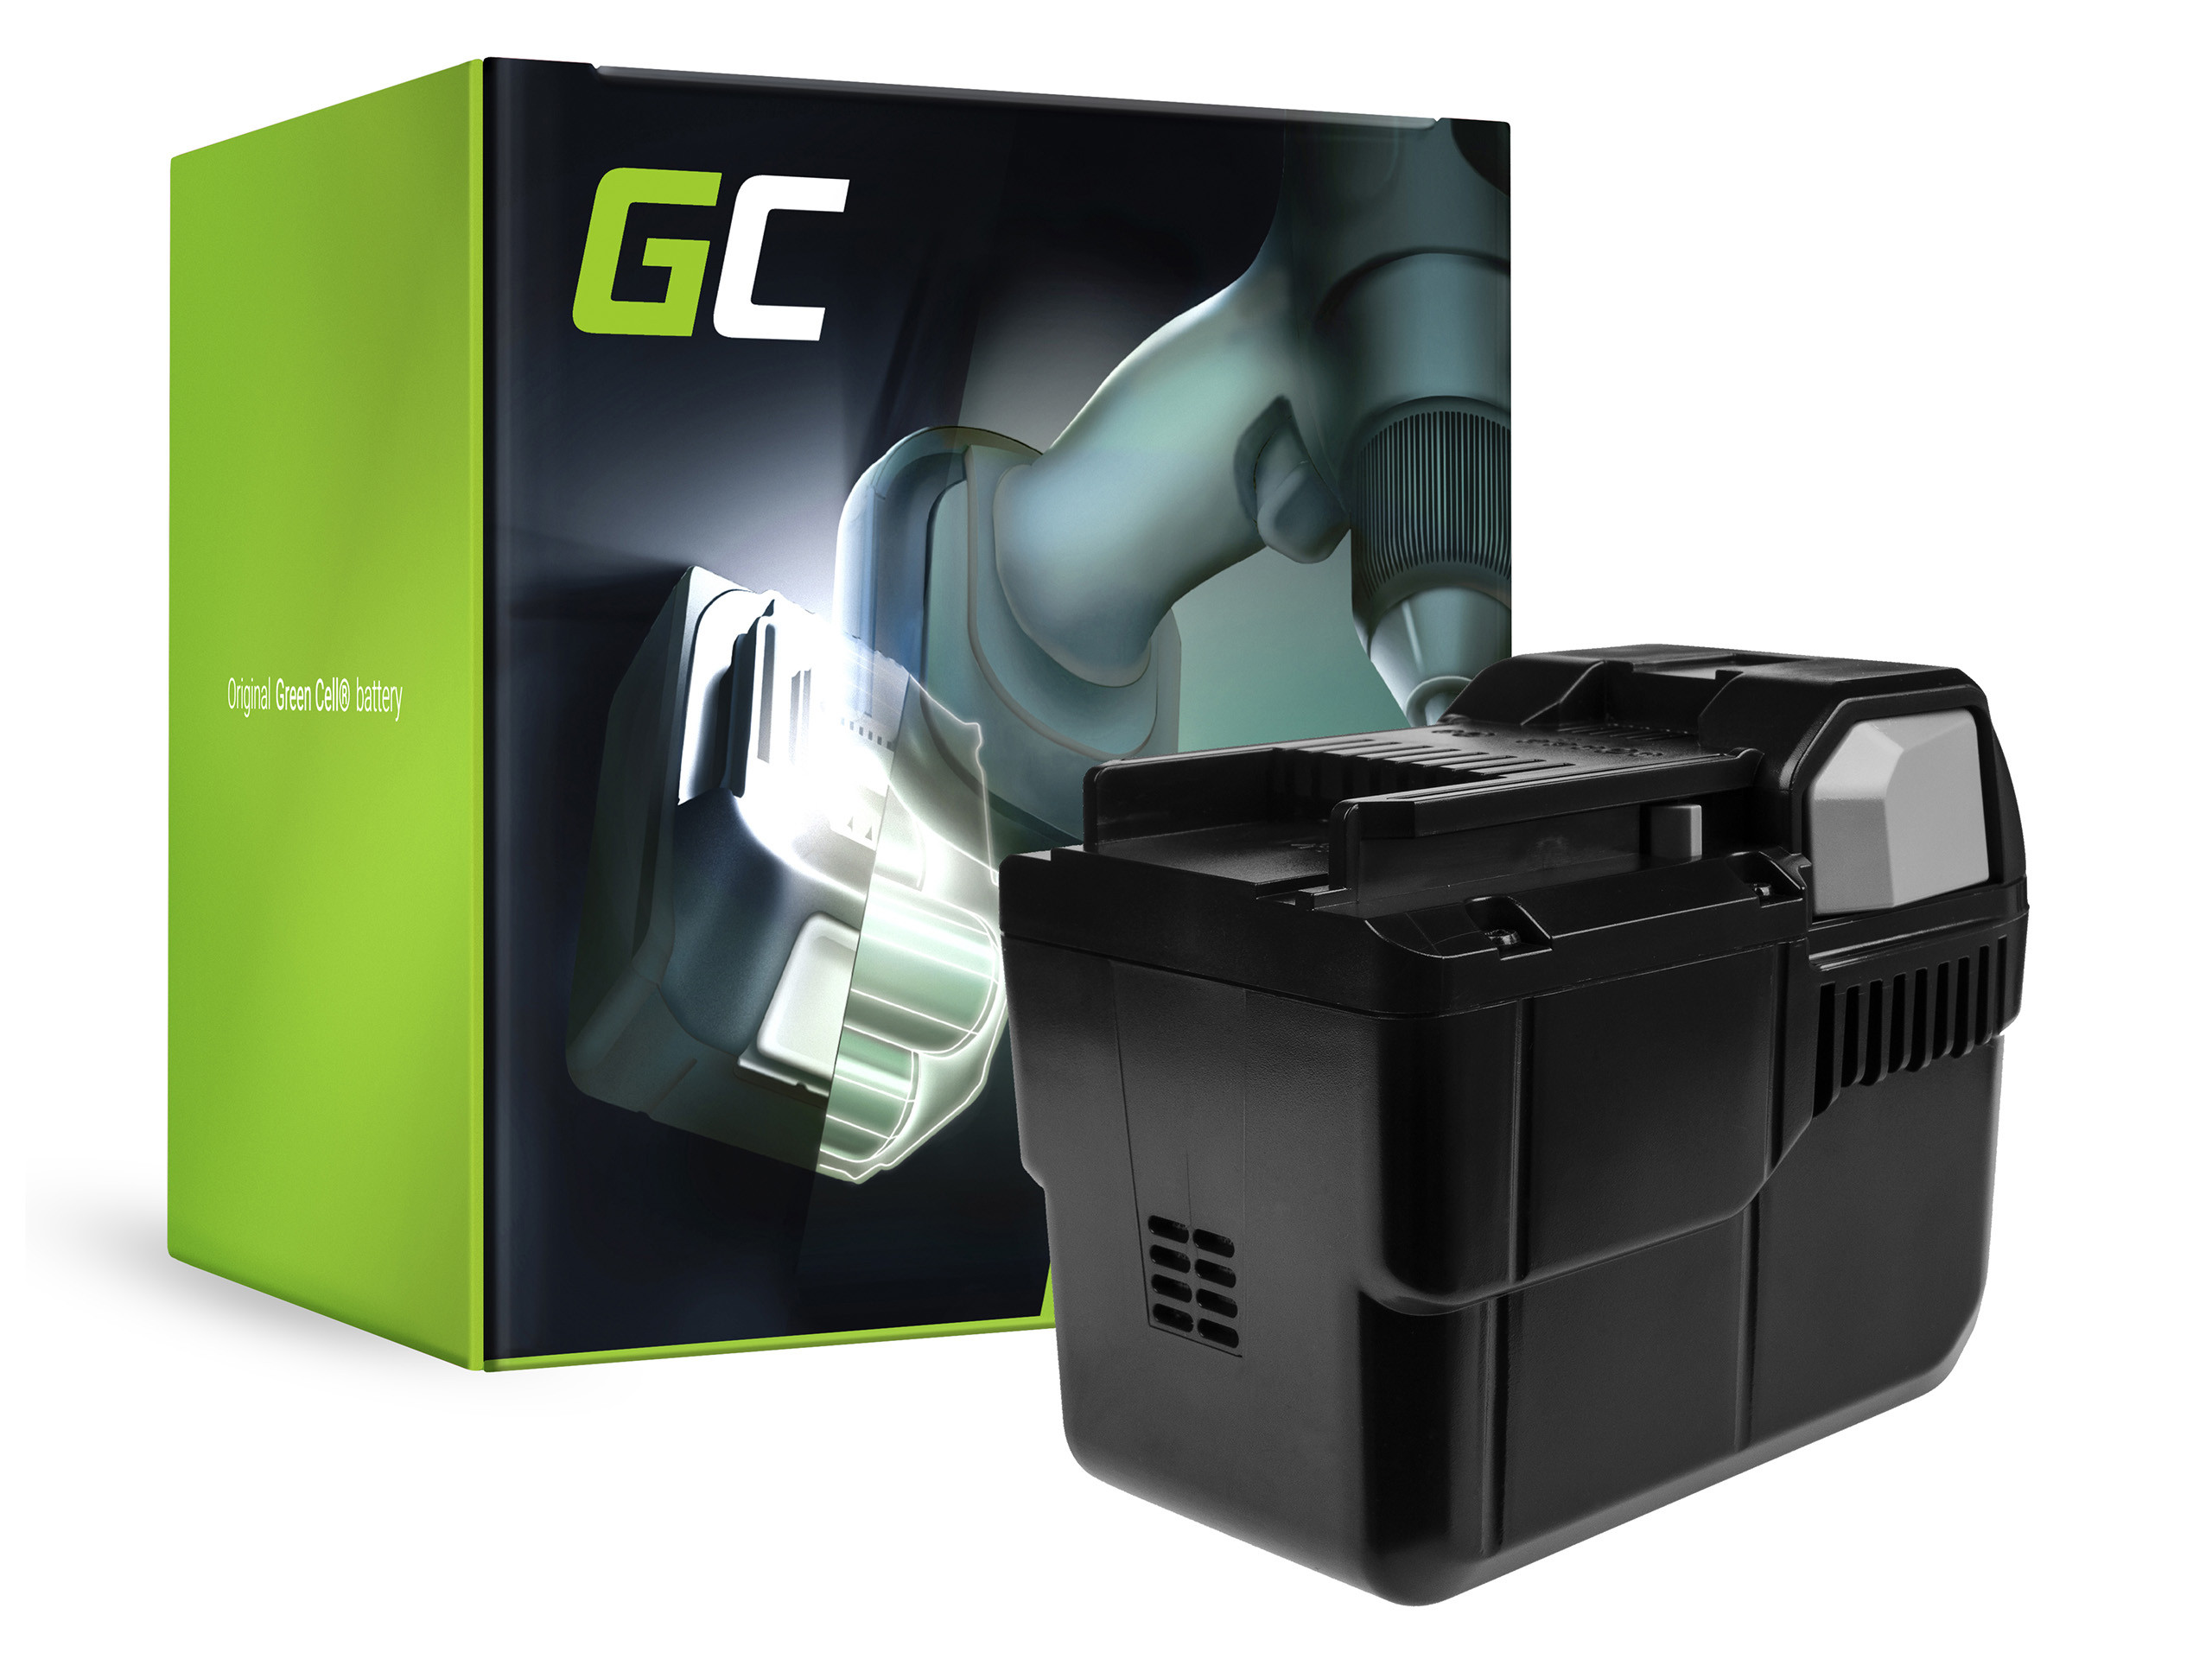 Green Cell Power Tool Battery BSL 3620 BSL 3626 for Hitachi CG 36DL CS 36DL DH 36DL ML 36DL RB 36DL